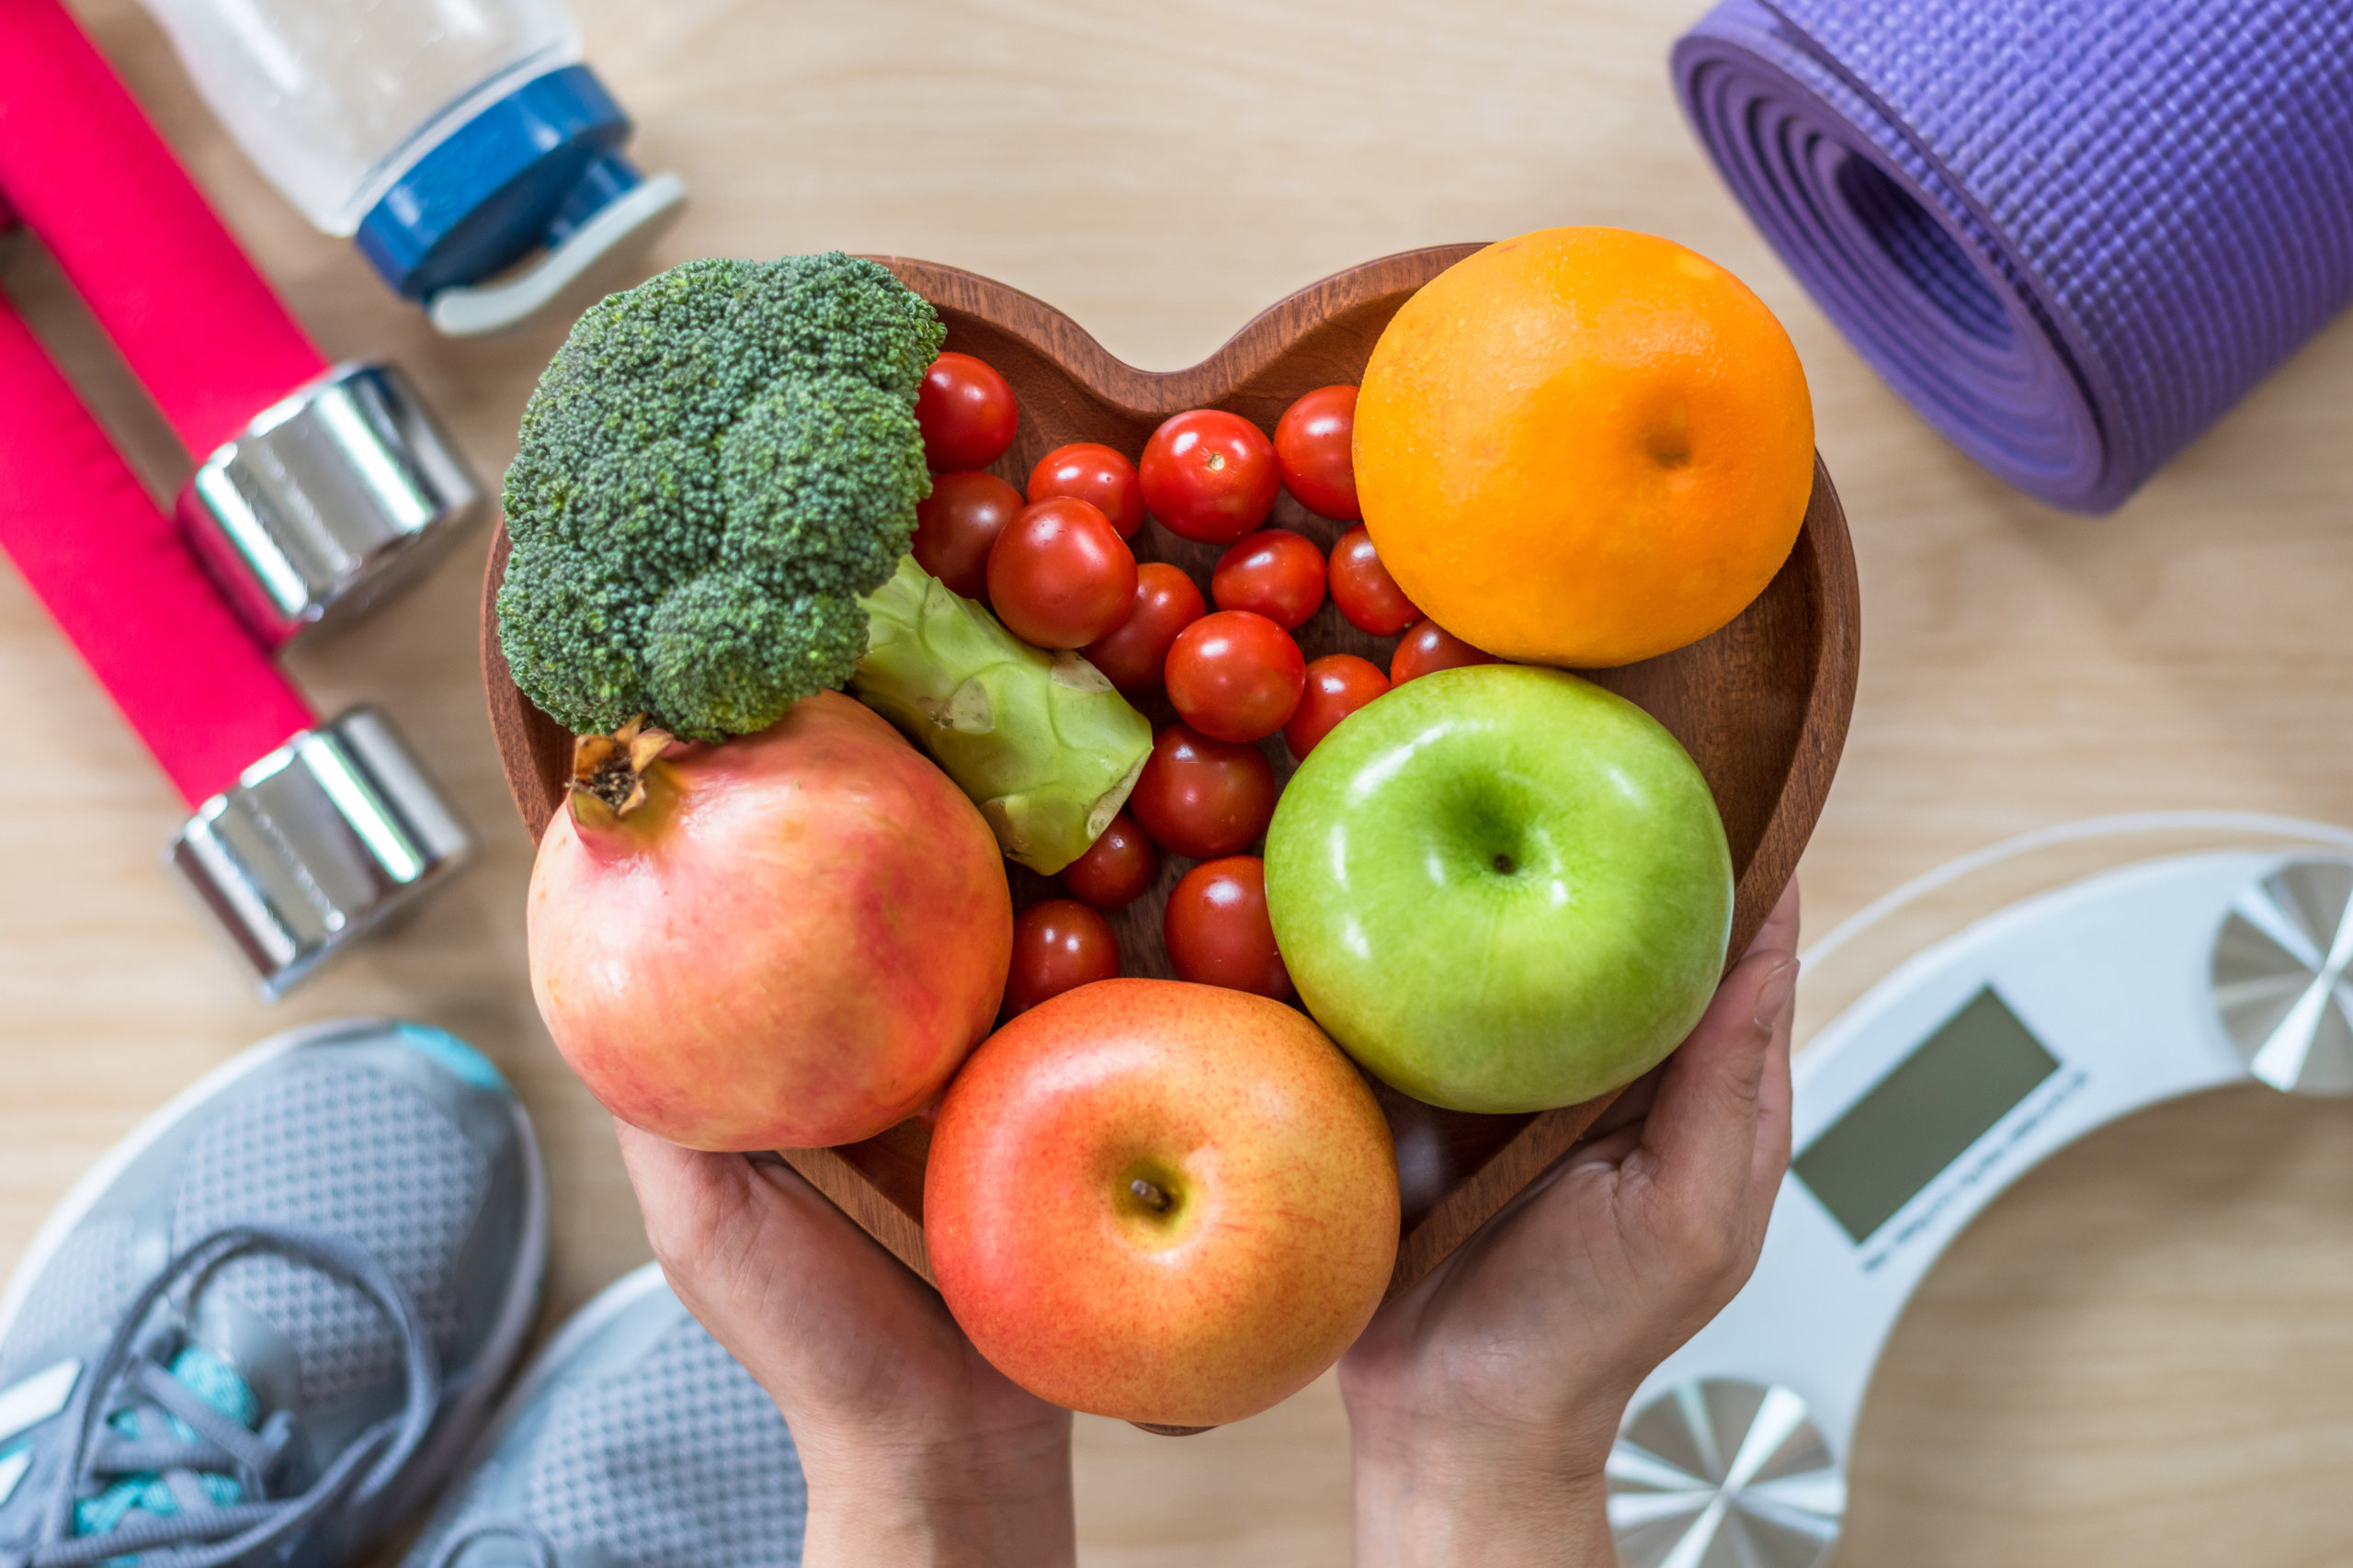 The Southern California Center for Anti-Aging explains why clean eating is the best choice for your health.